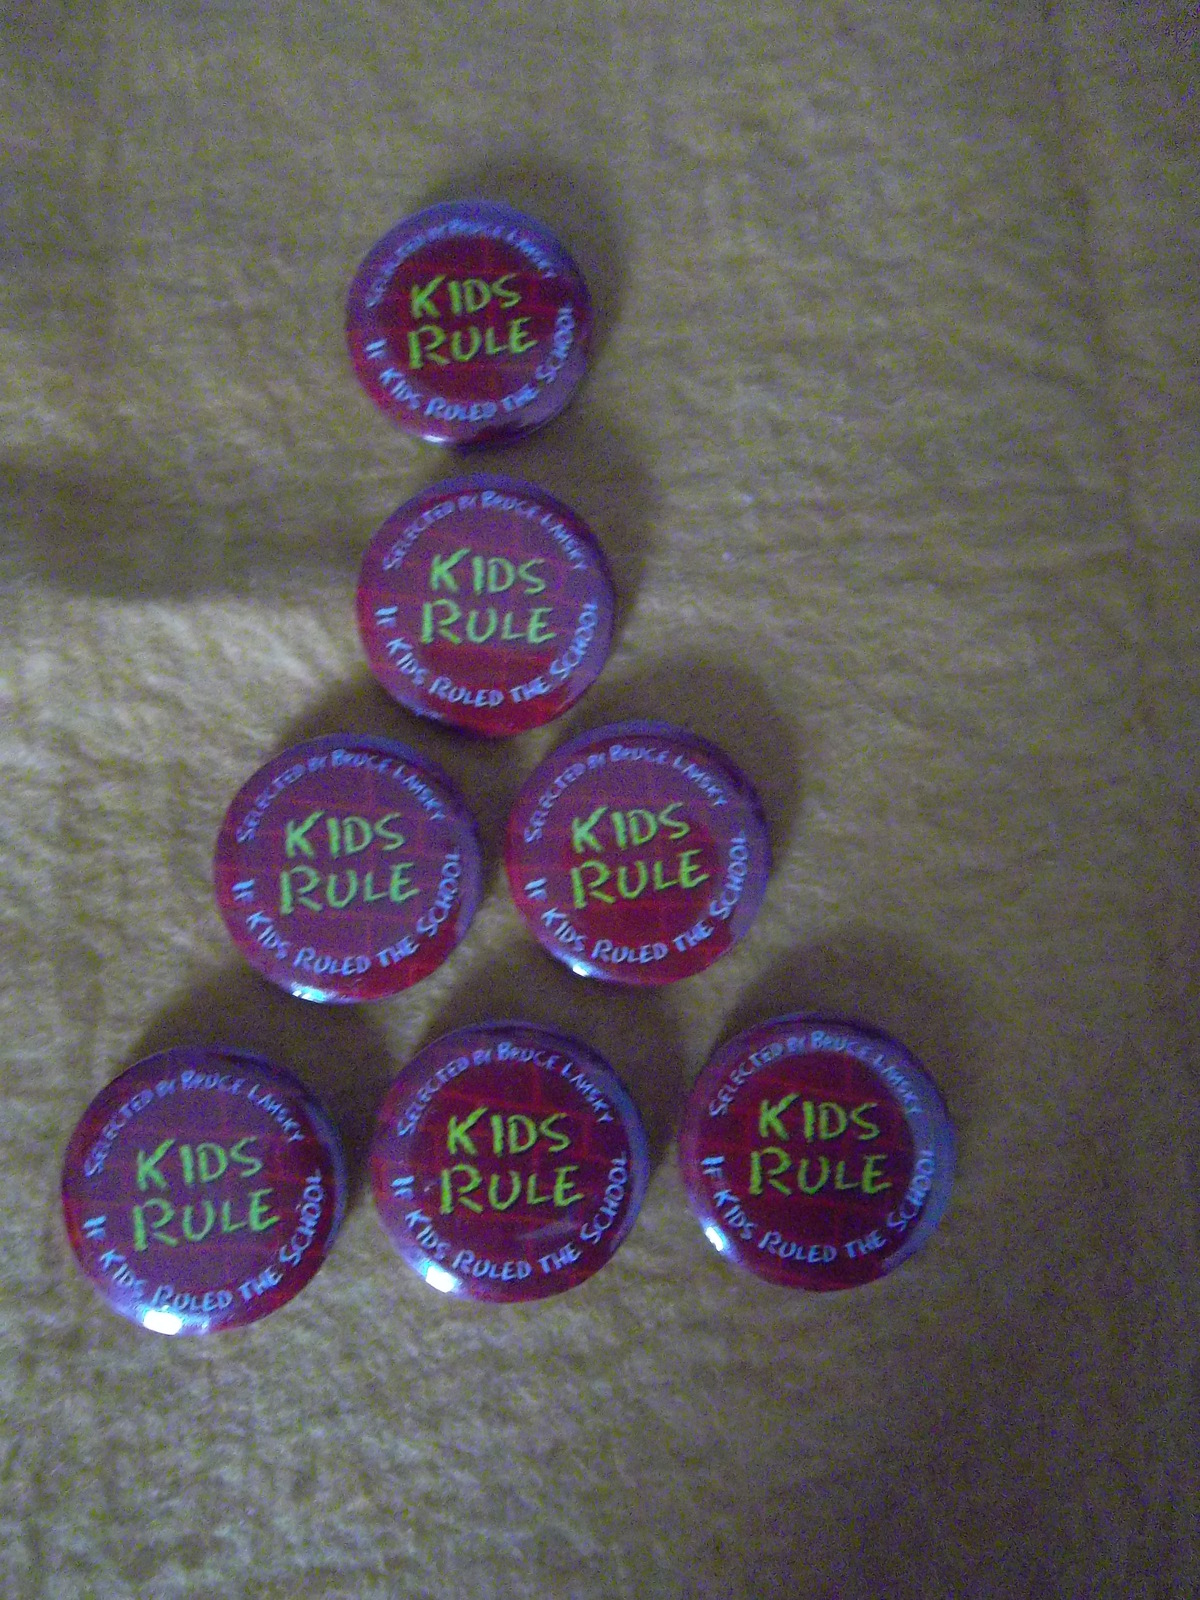 If kids rule the school pins linda 001